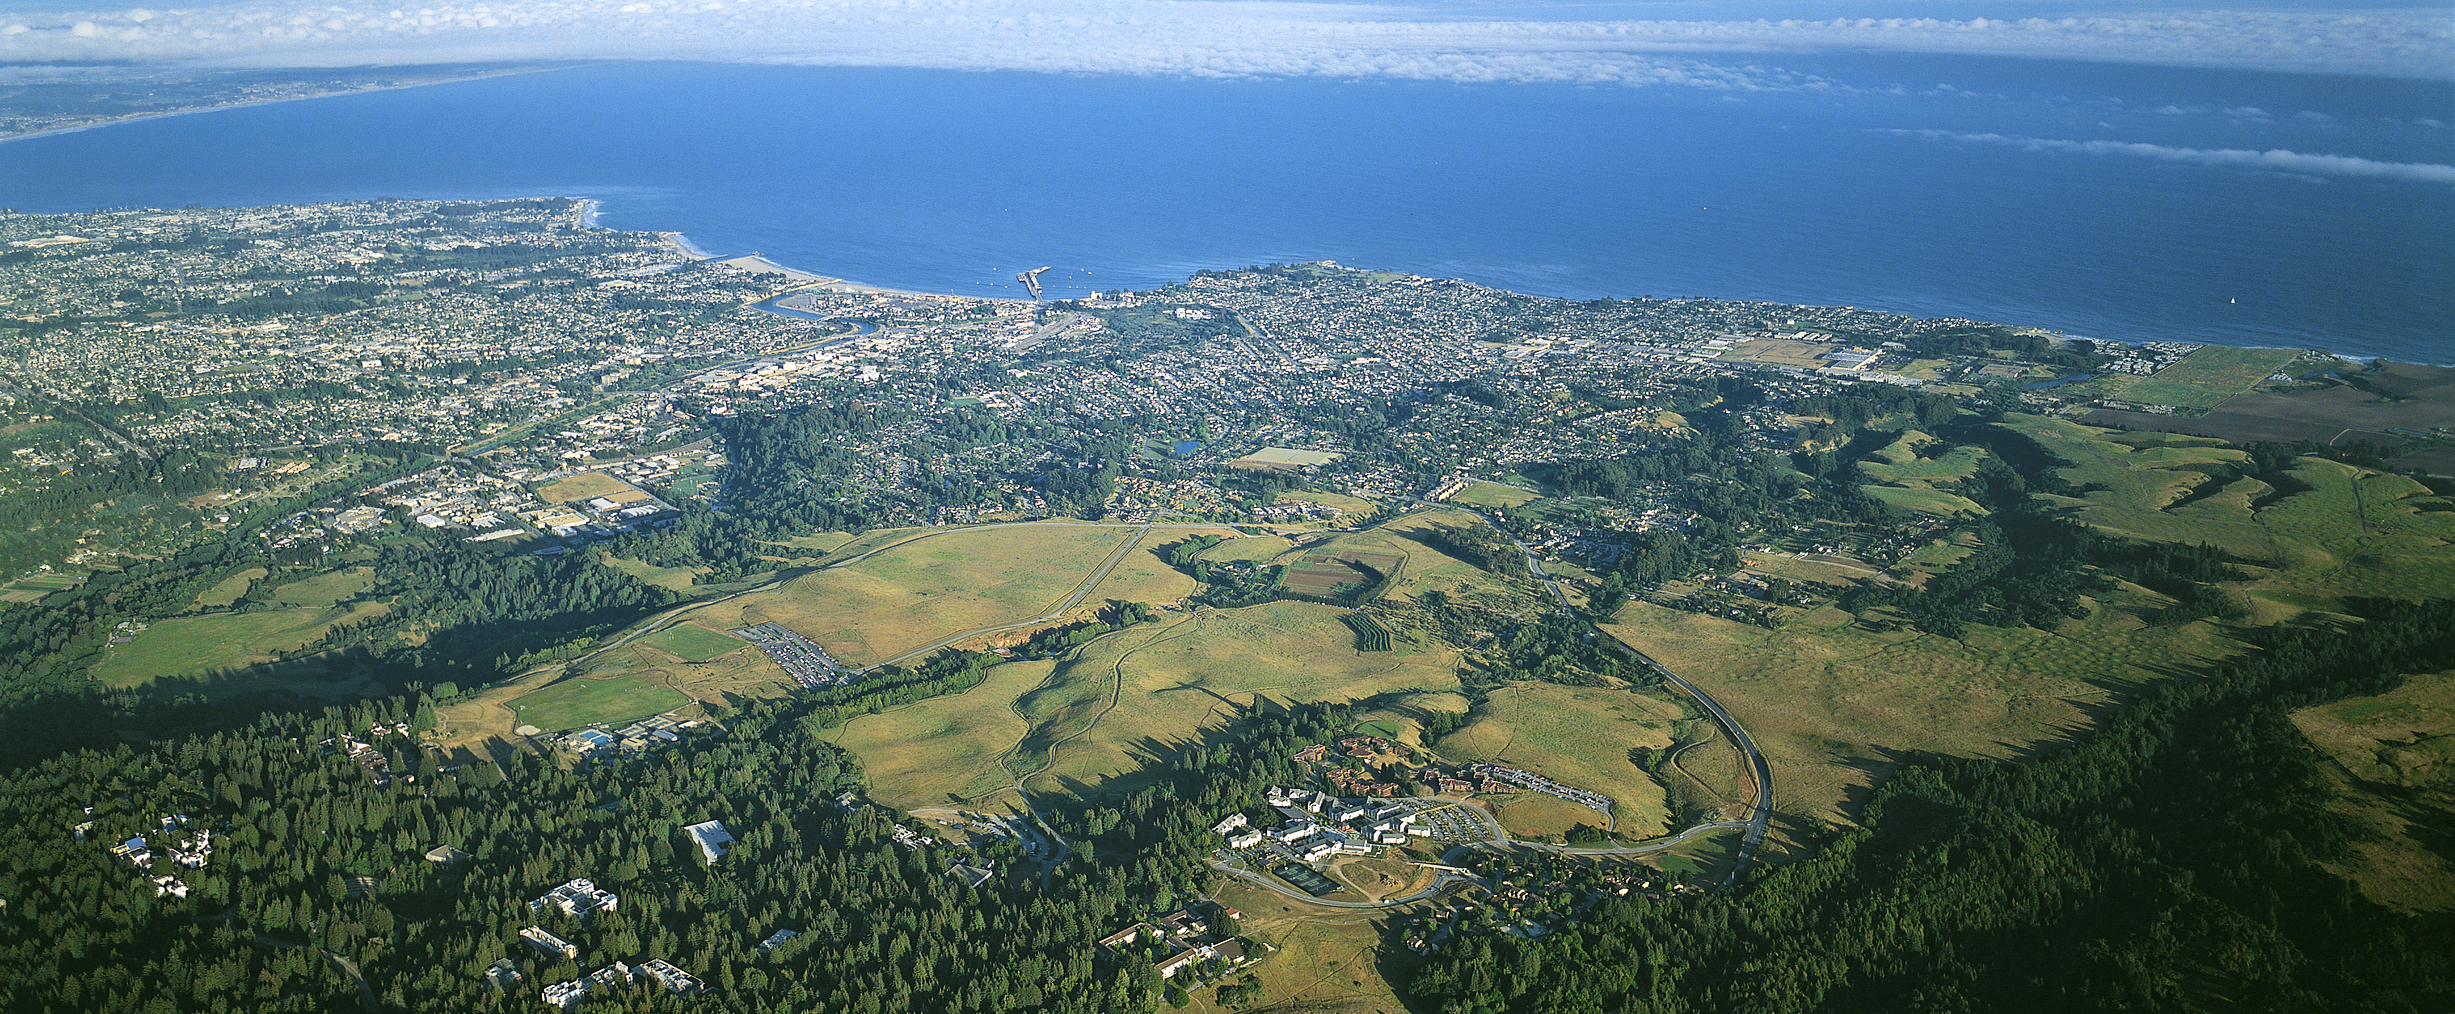 Aerial view of the campus and Monterey Bay